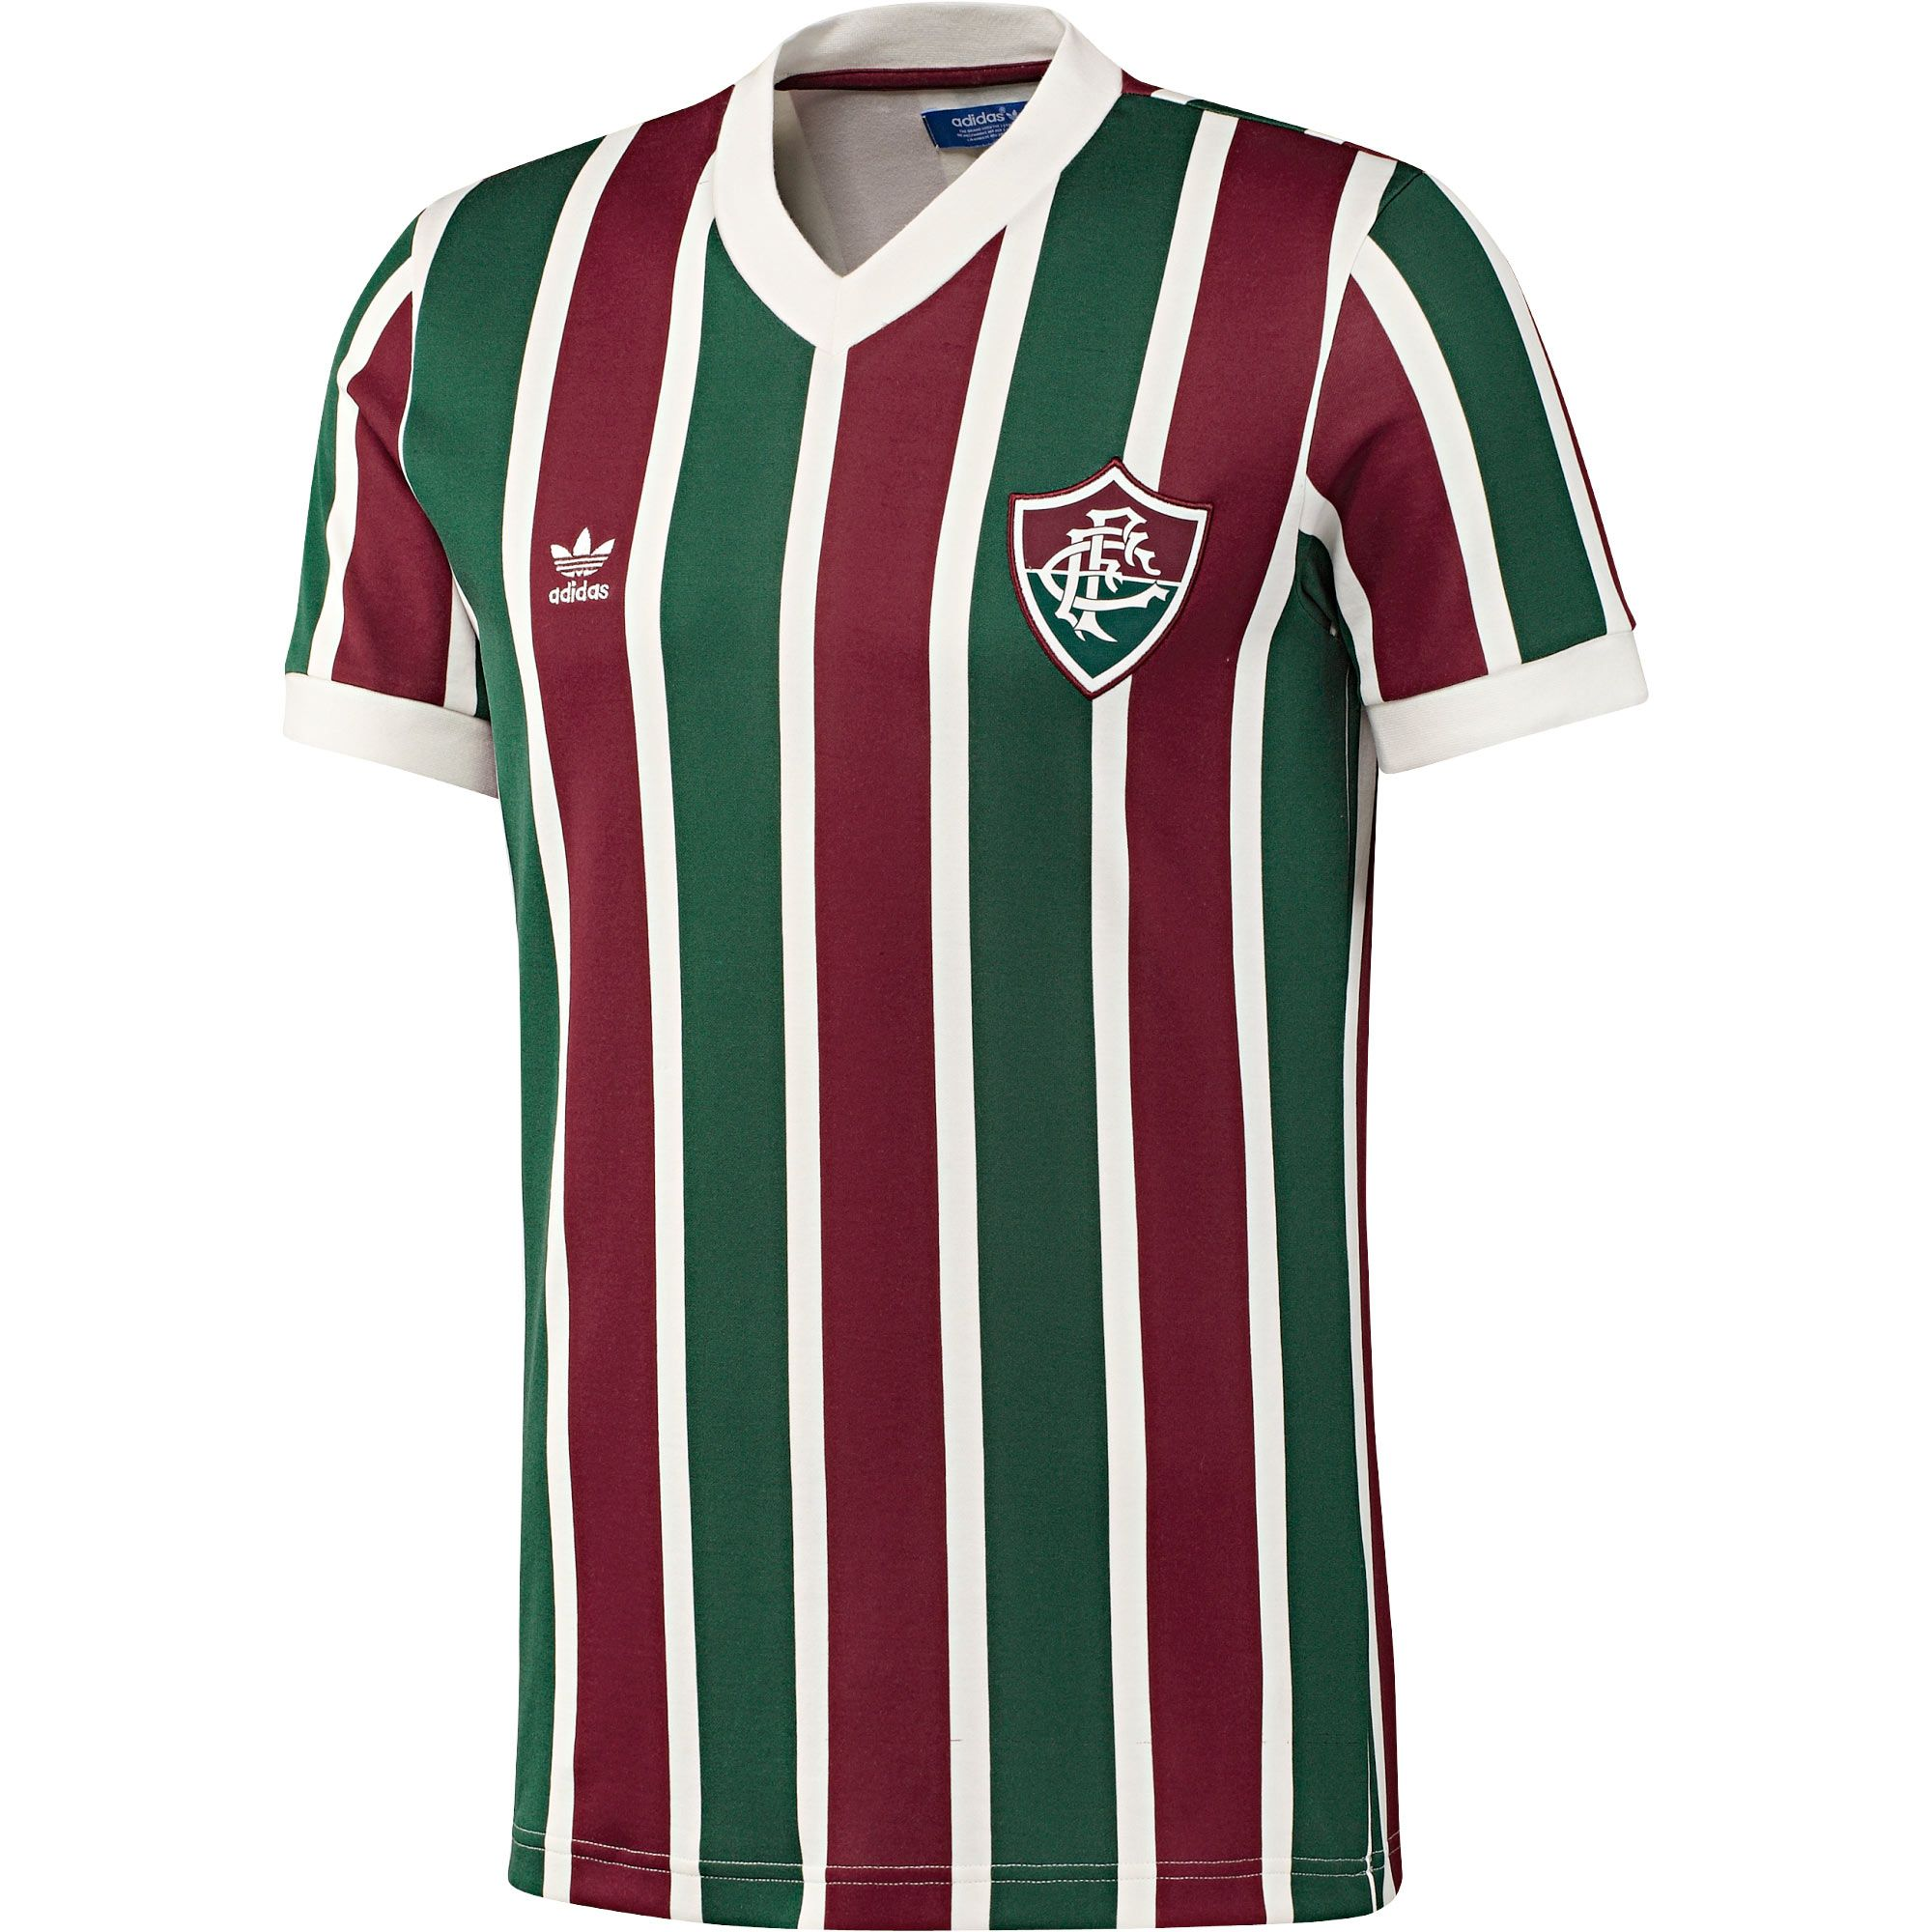 adidas Originals Retro Fluminense FC Football Shirt  e7335585f3983